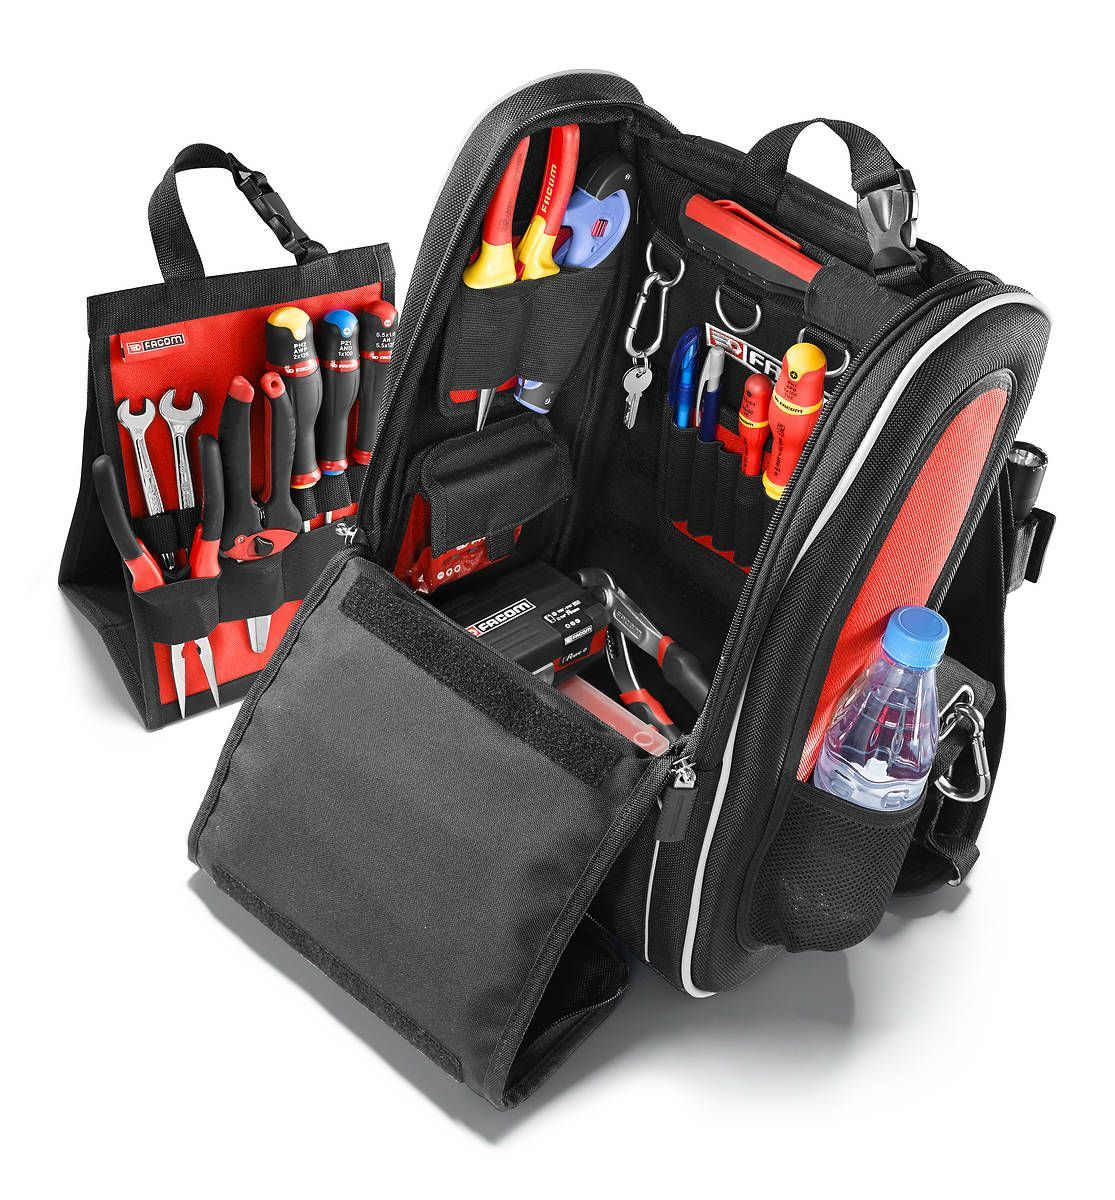 2486fd8a9301 Facom BS.MCB Compact Tool BackPack / RuckSack Storage Bag in 2019 ...